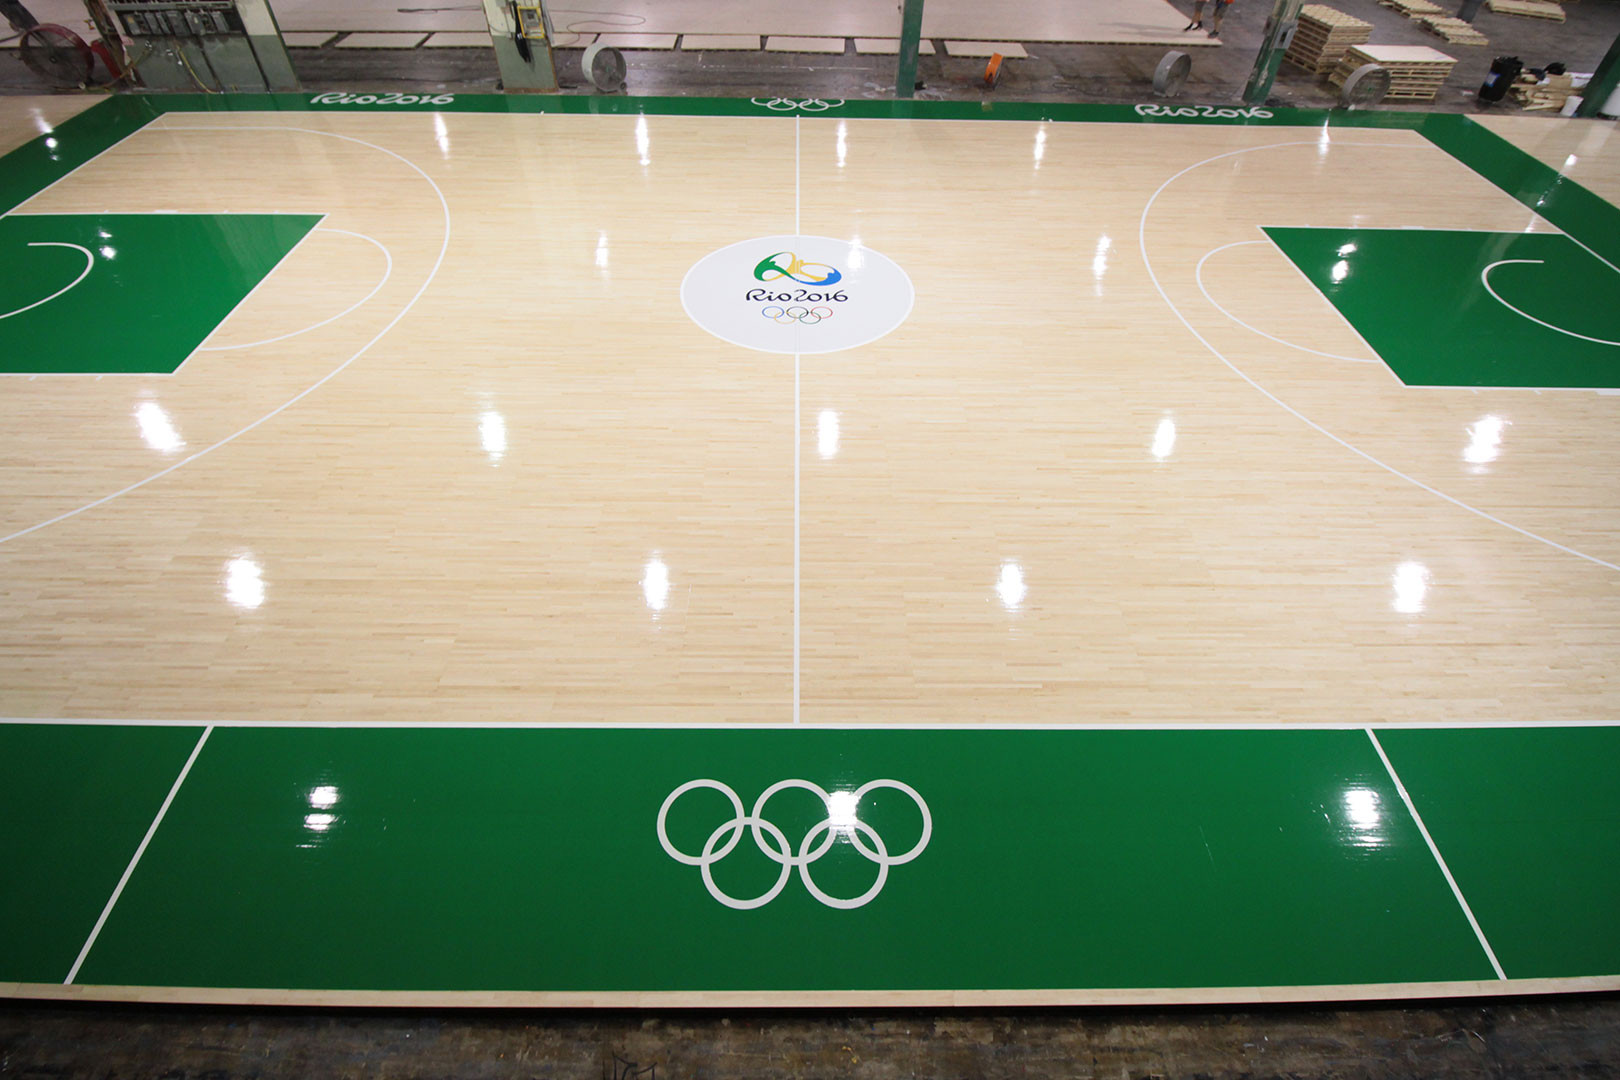 praters hardwood flooring chattanooga of praters finishes courts for rio olympics wrbc chattanooga intended for rioolympics1